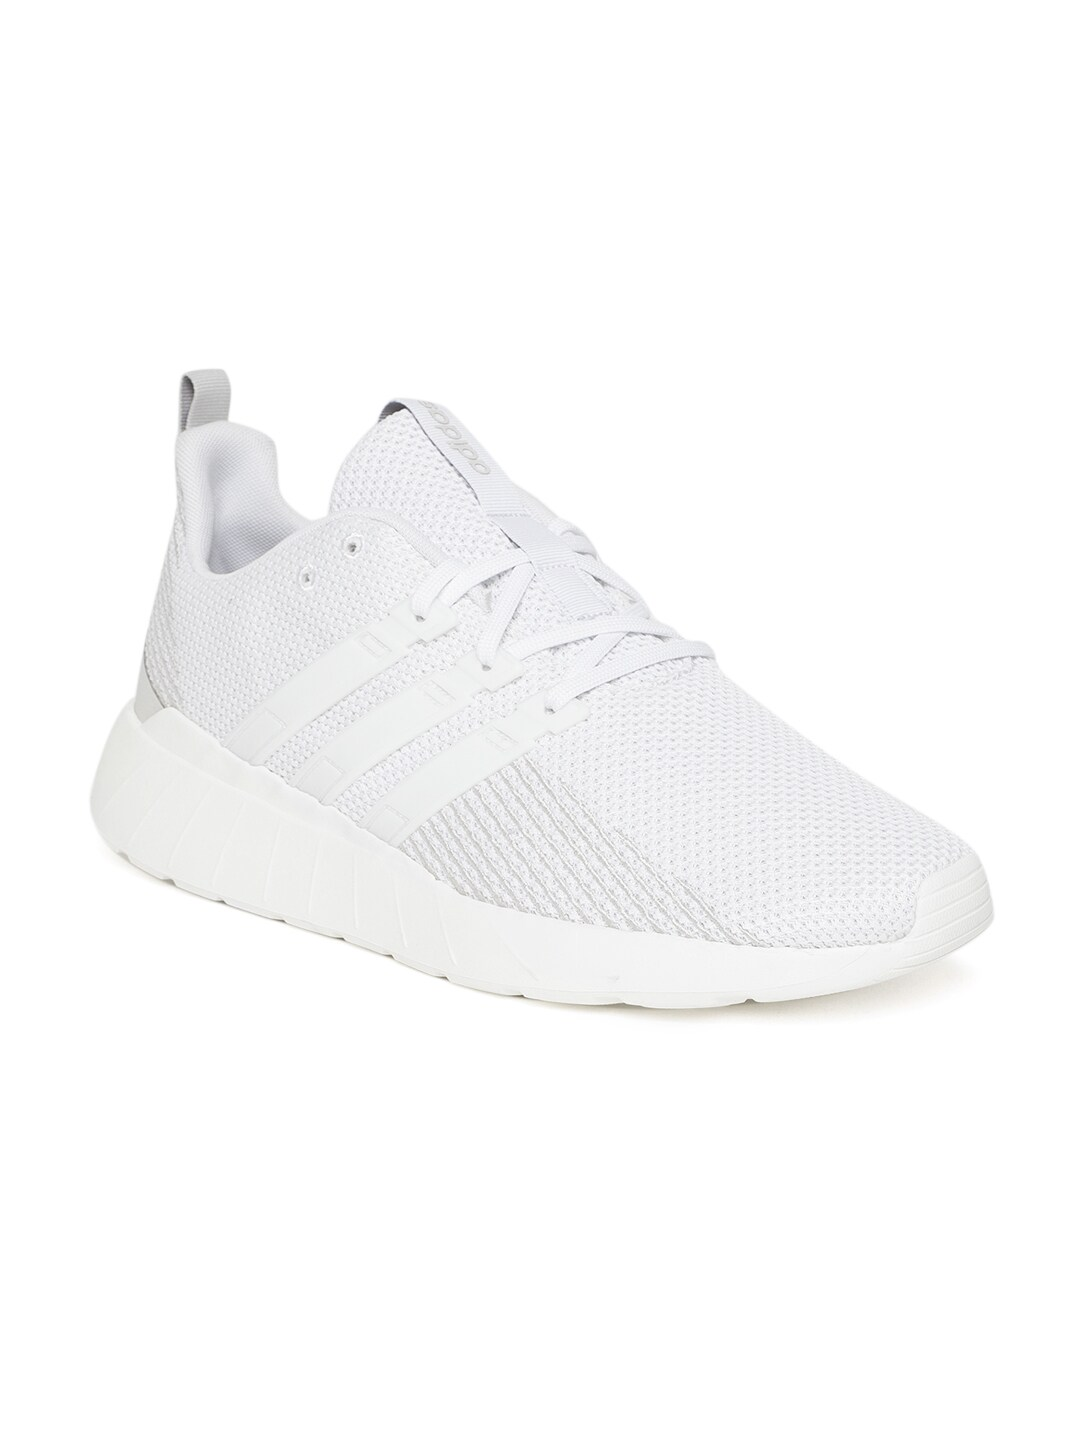 buy popular 6013c fb1b4 Adidas Shoes - Buy Adidas Shoes for Men   Women Online - Myntra